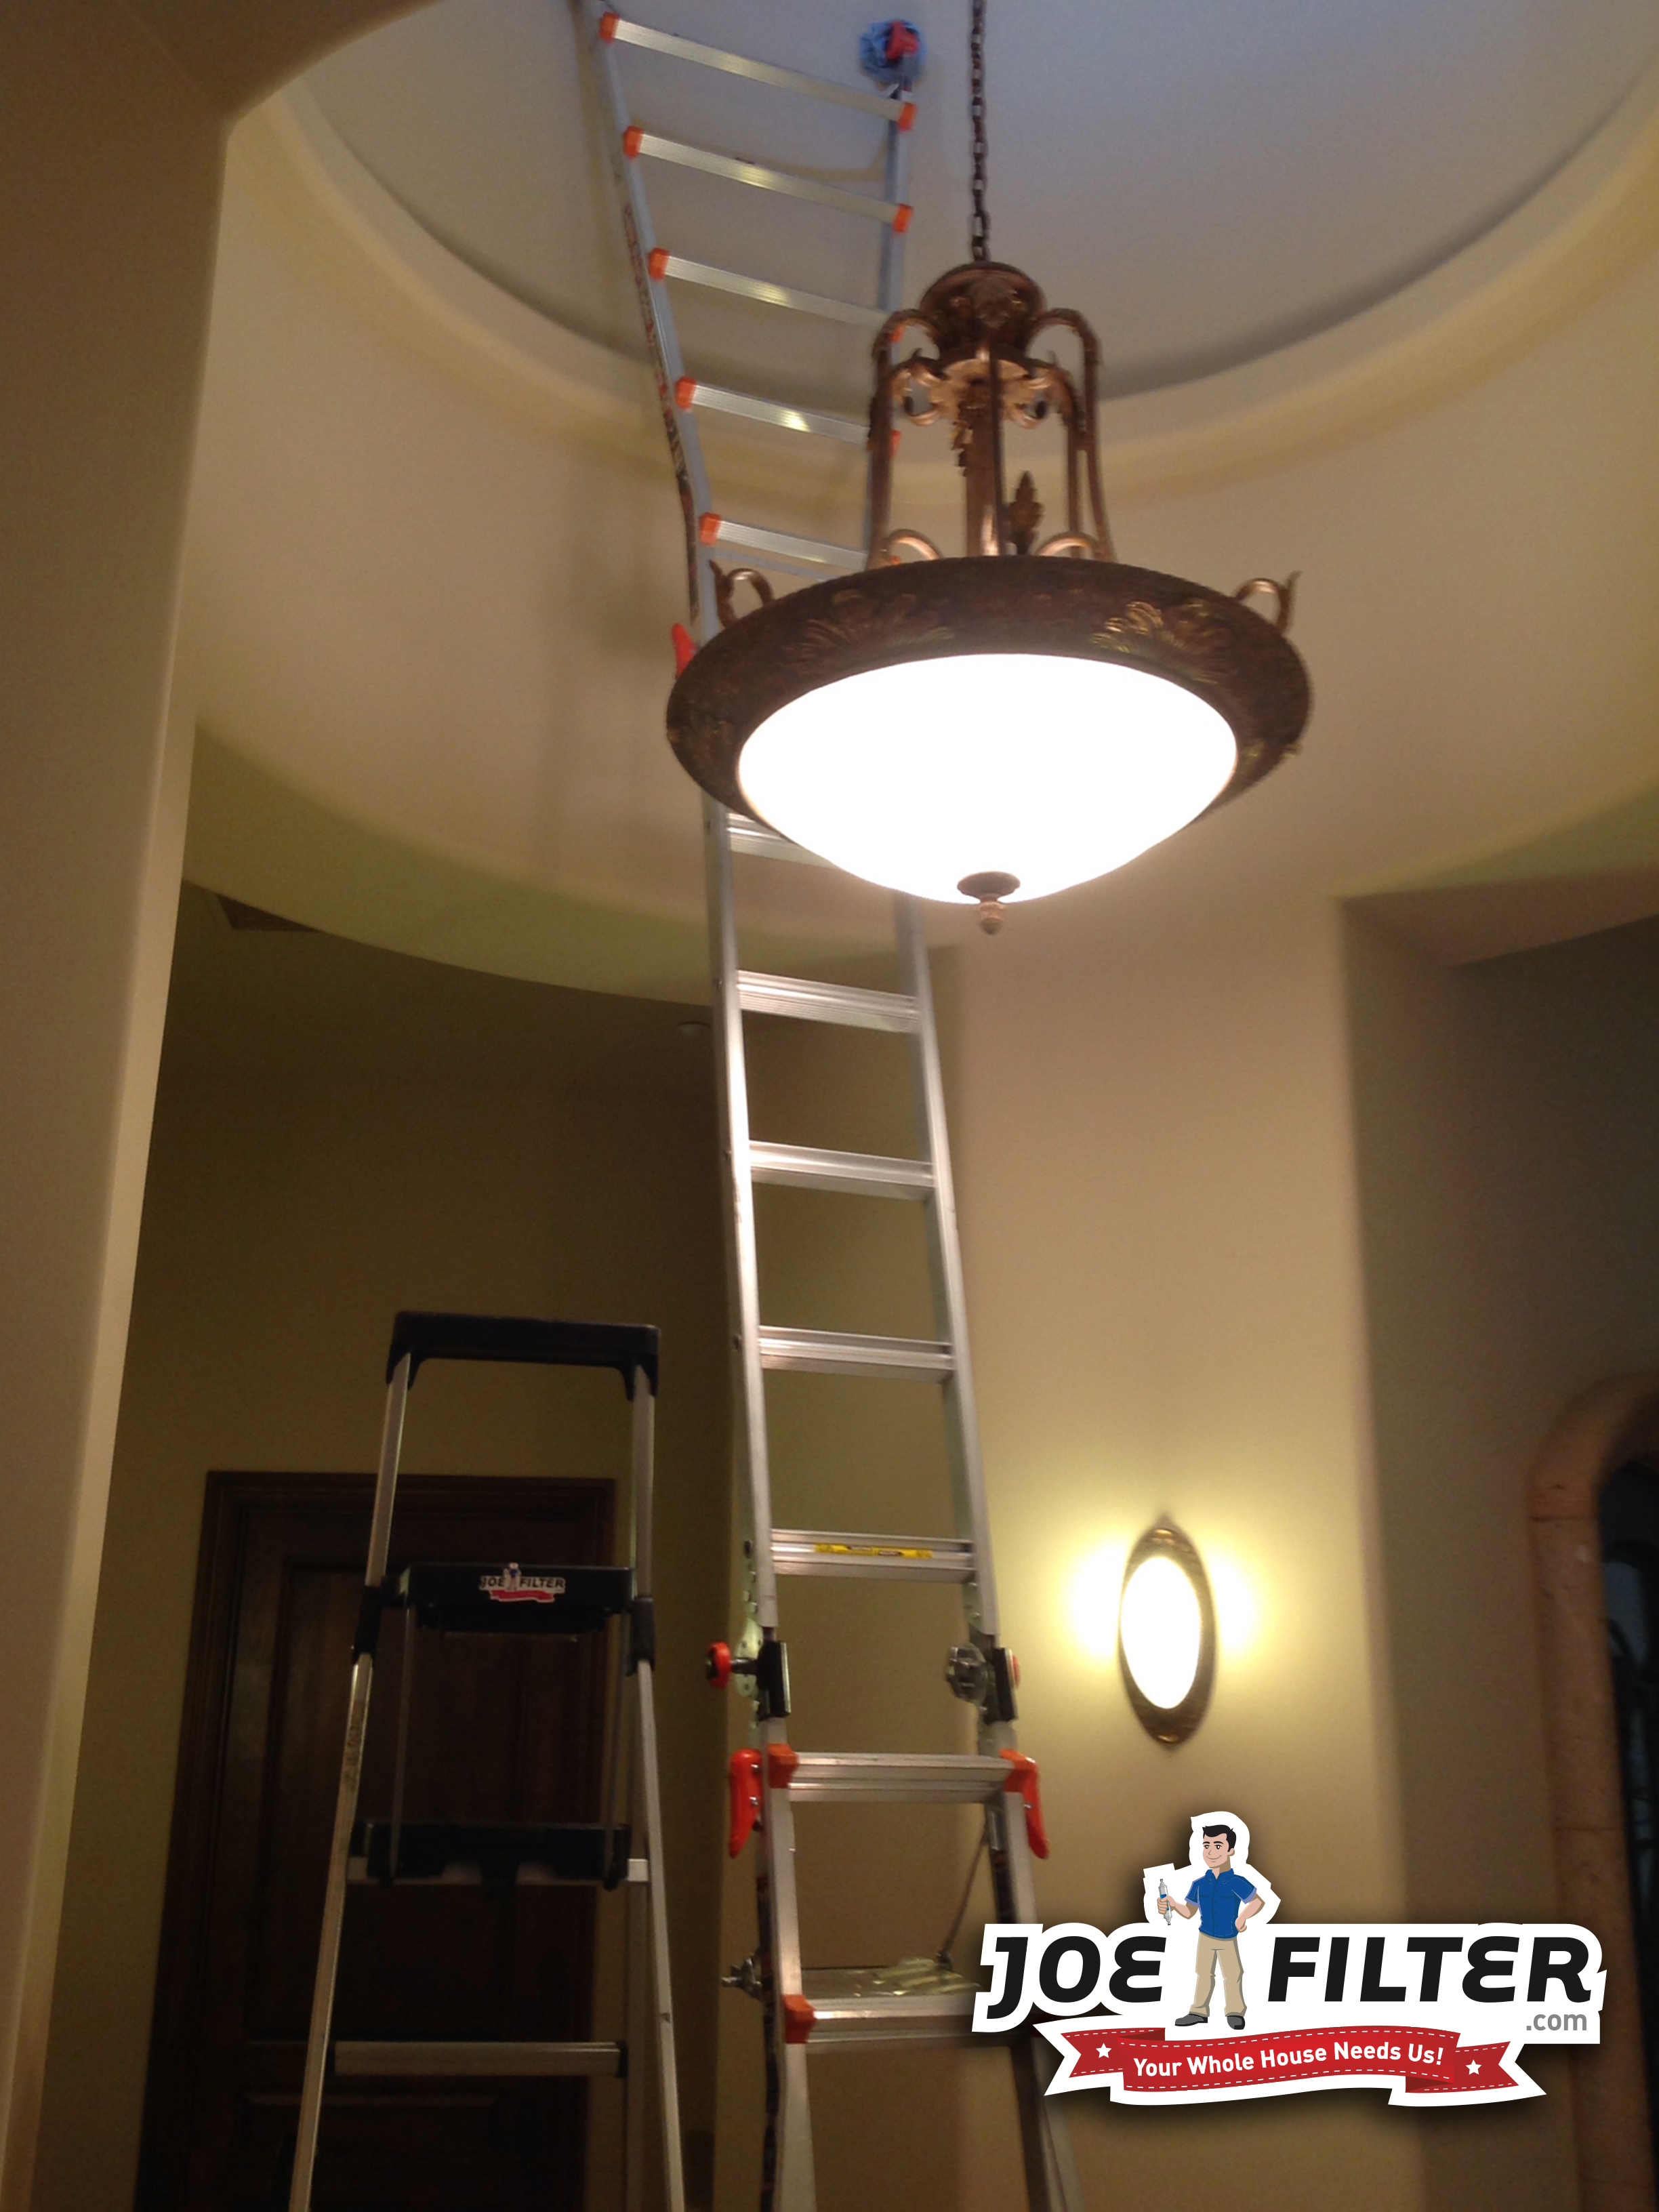 Worried About Getting On A High Ladder To Change A Light Or Smoke Alarm Don T Sweat It Just Call Joe Filter To Come Do It 480 Home Hacks Smoke Alarms Light